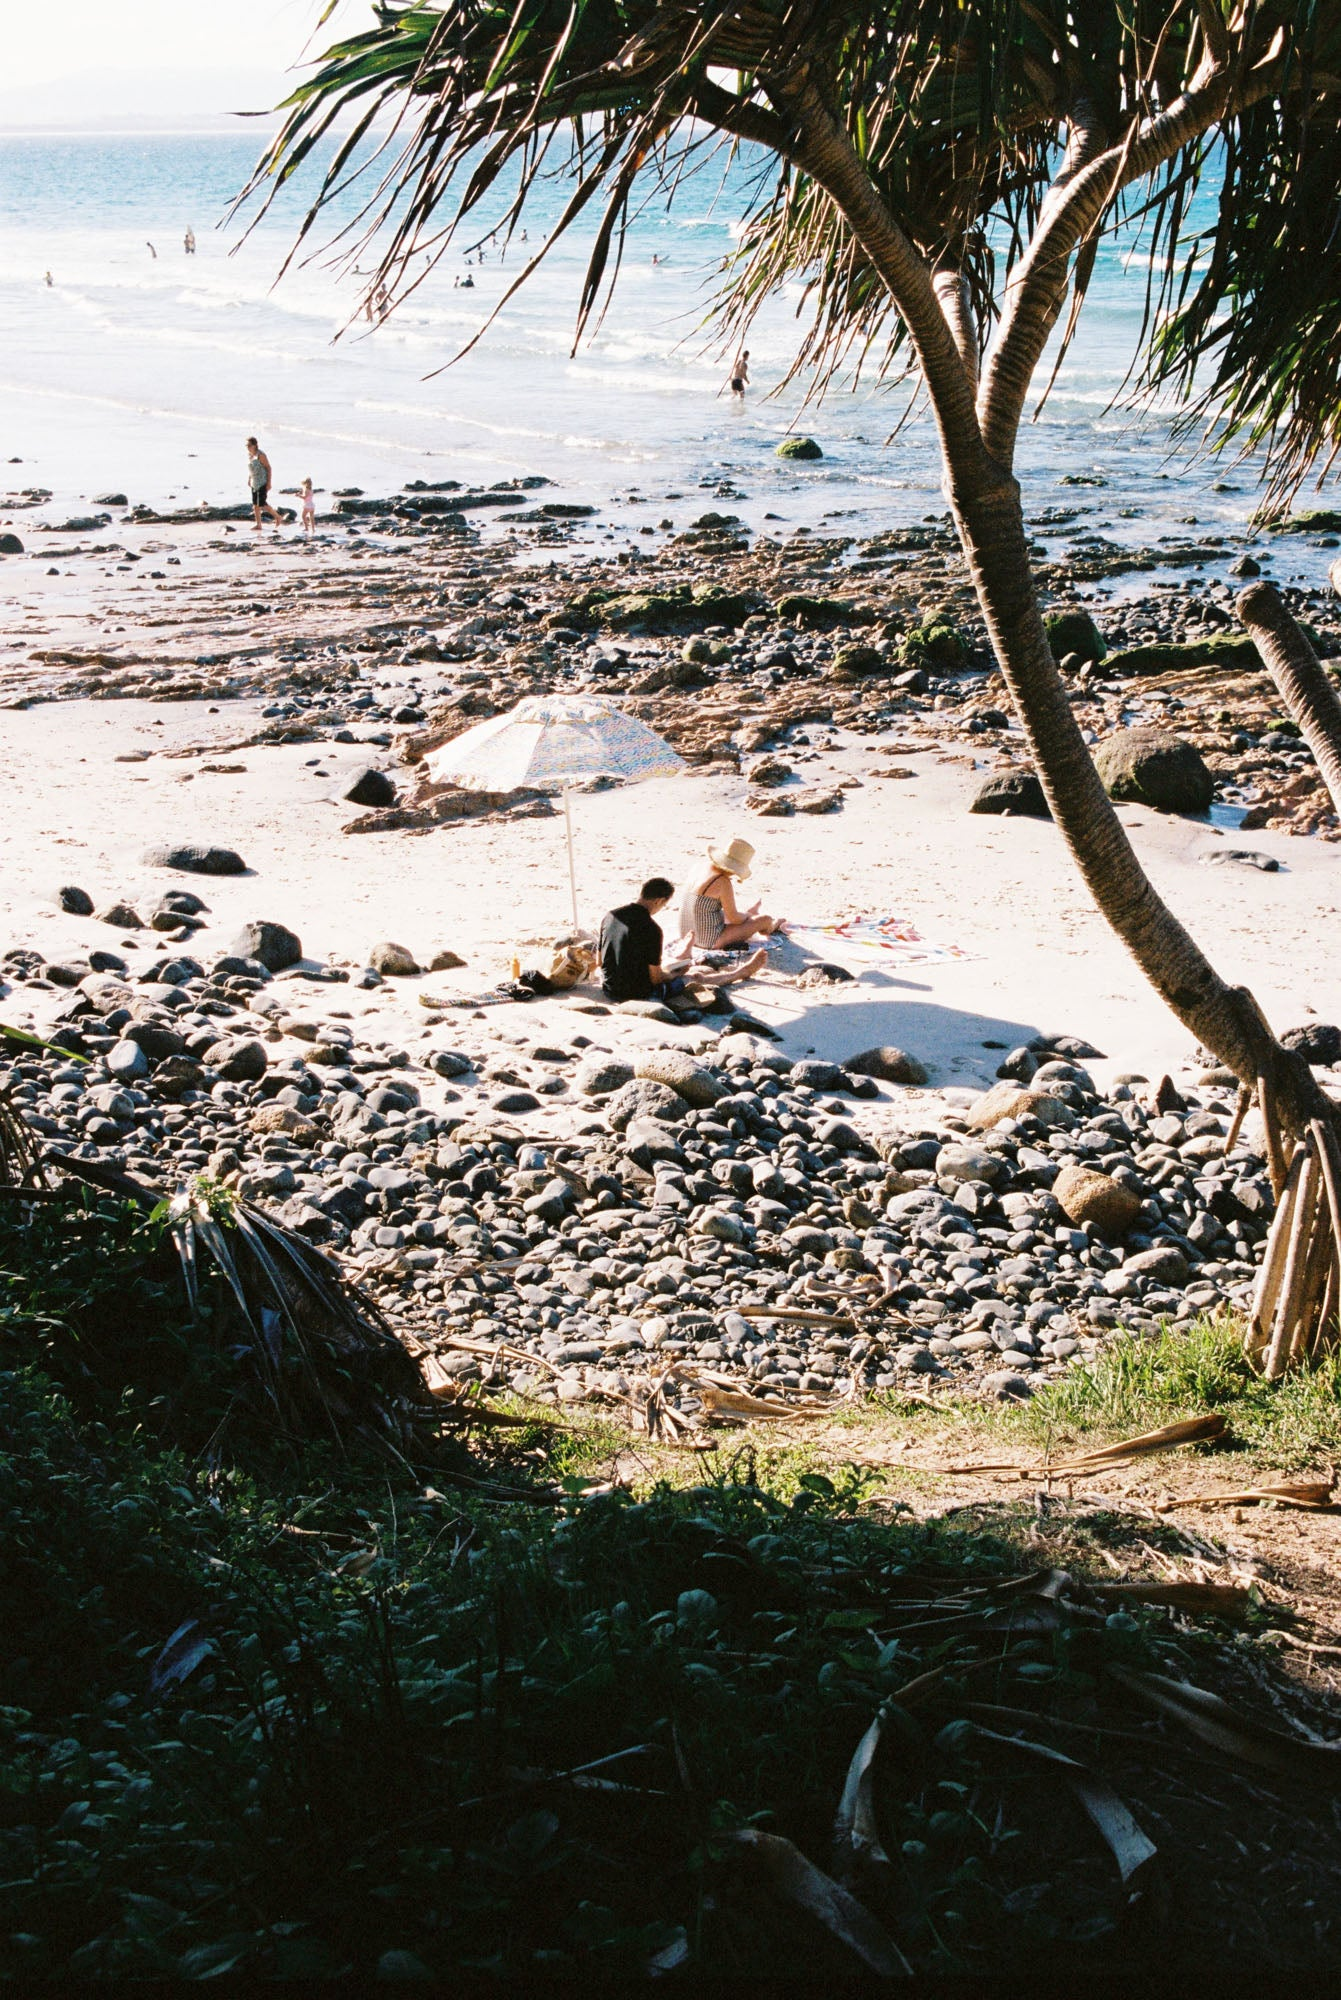 a couple read books on the beach under an umbrella in Byron bay. Palm trees & blue water